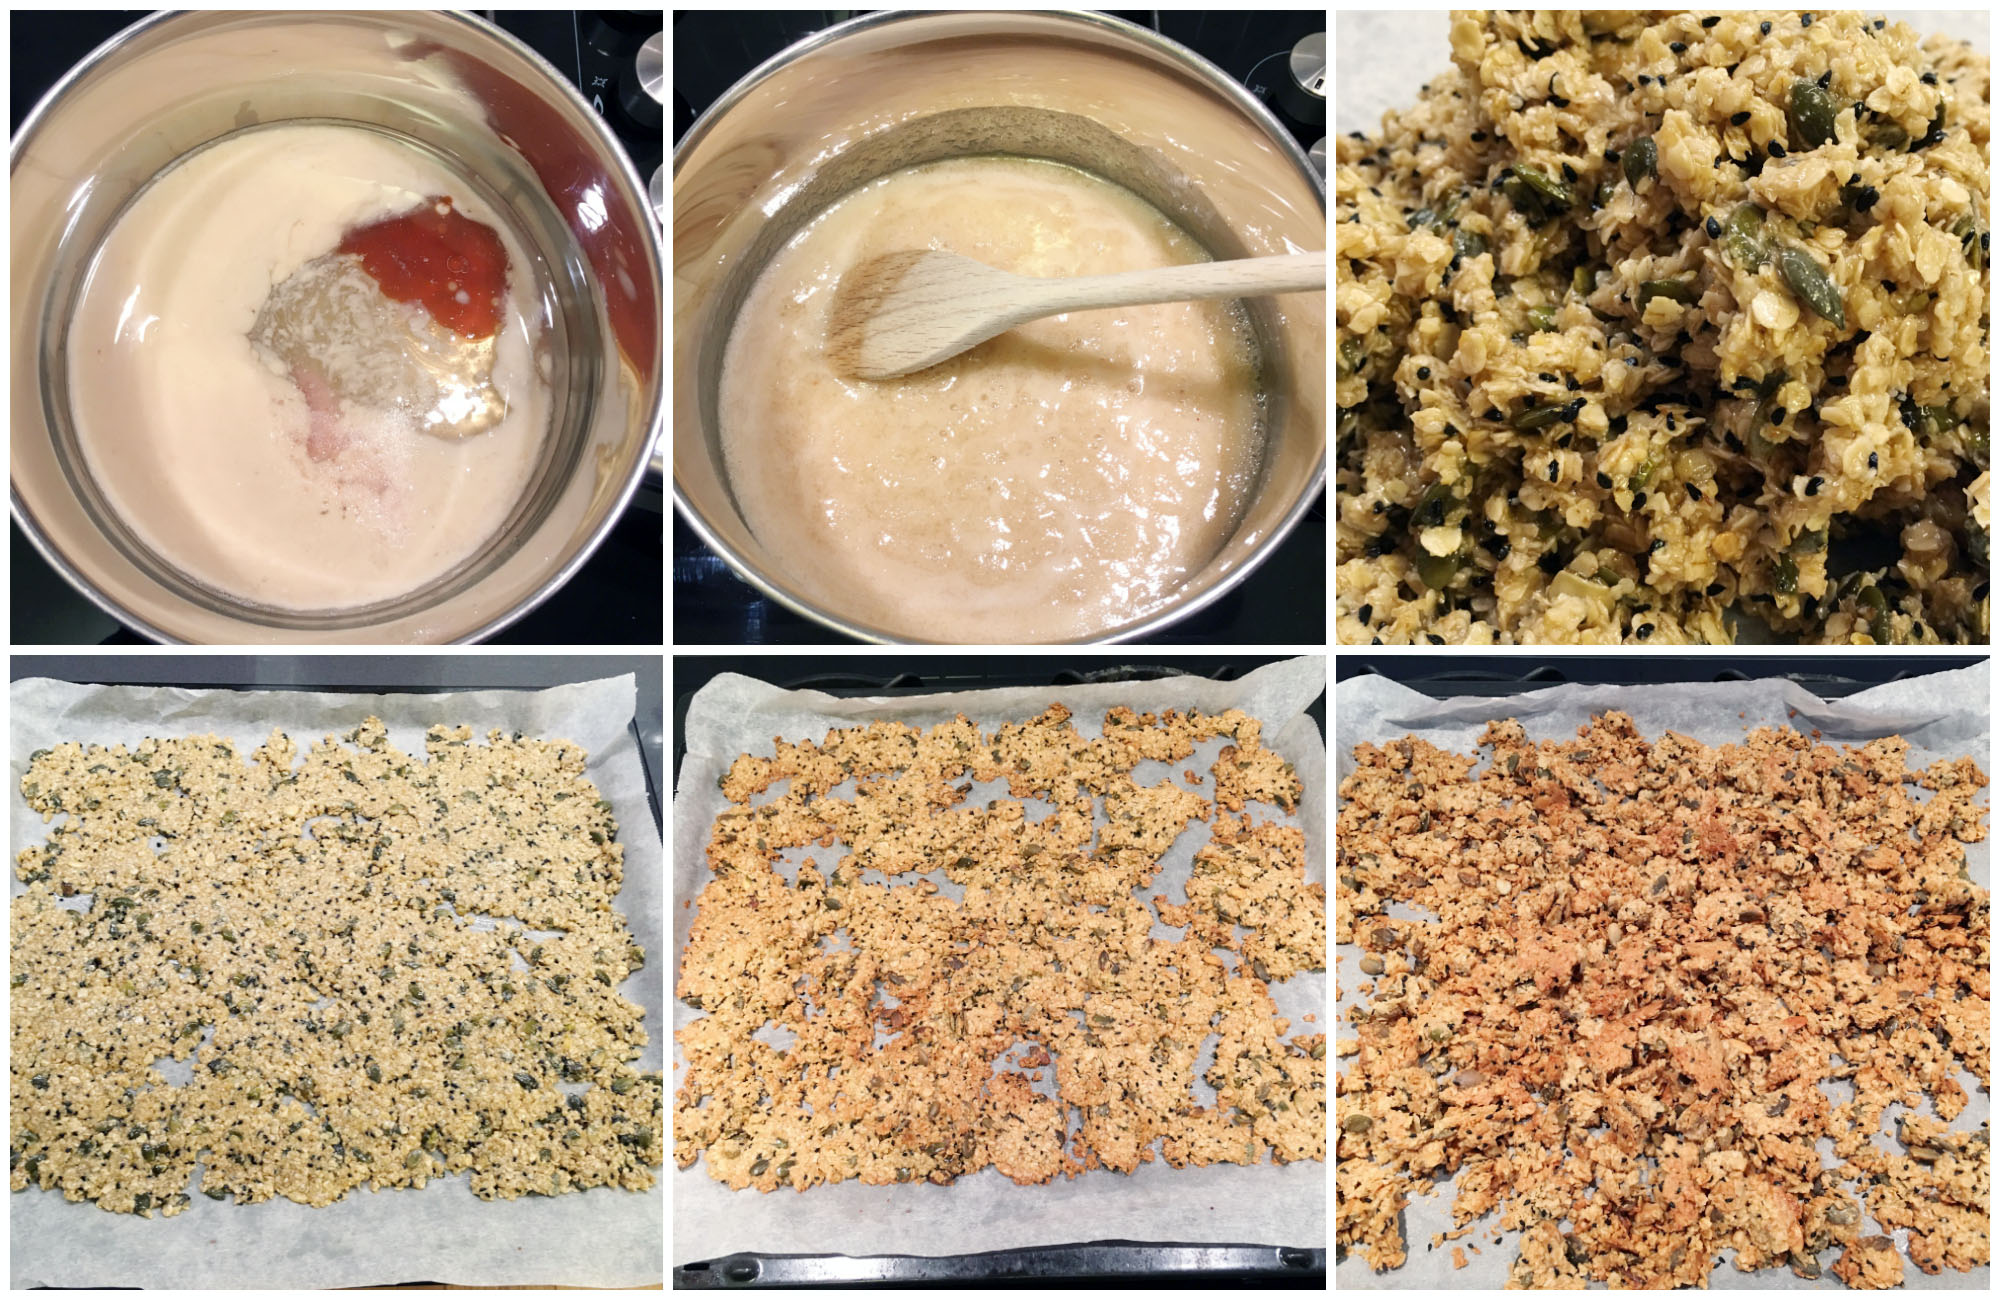 Gluten Free Vegan Salted Caramel Granola - in the making!